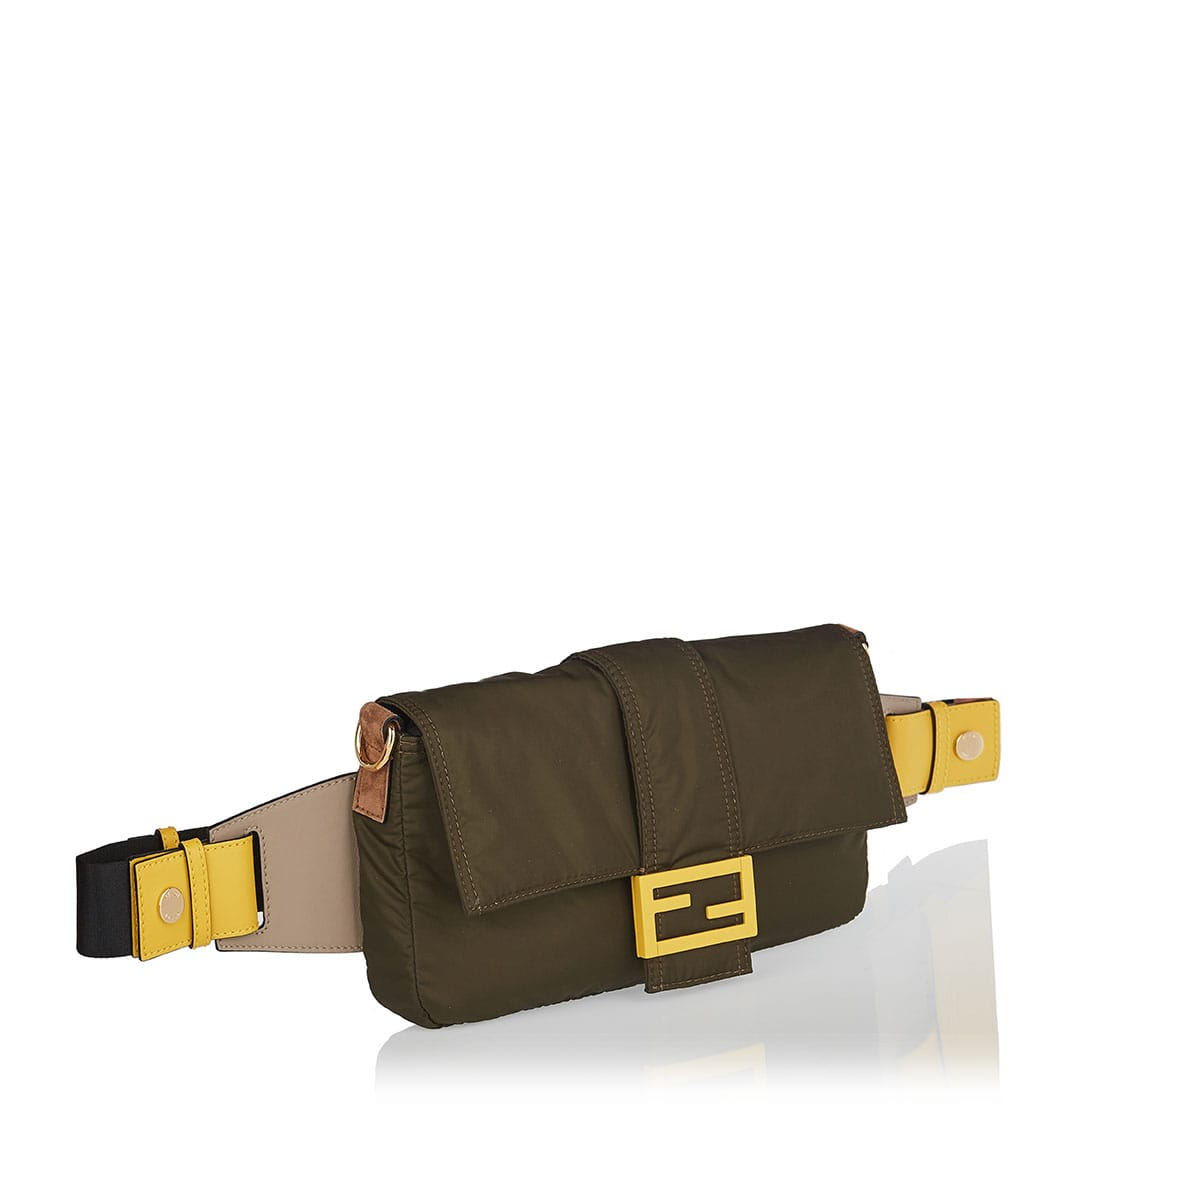 Baguette FF padded belt bag